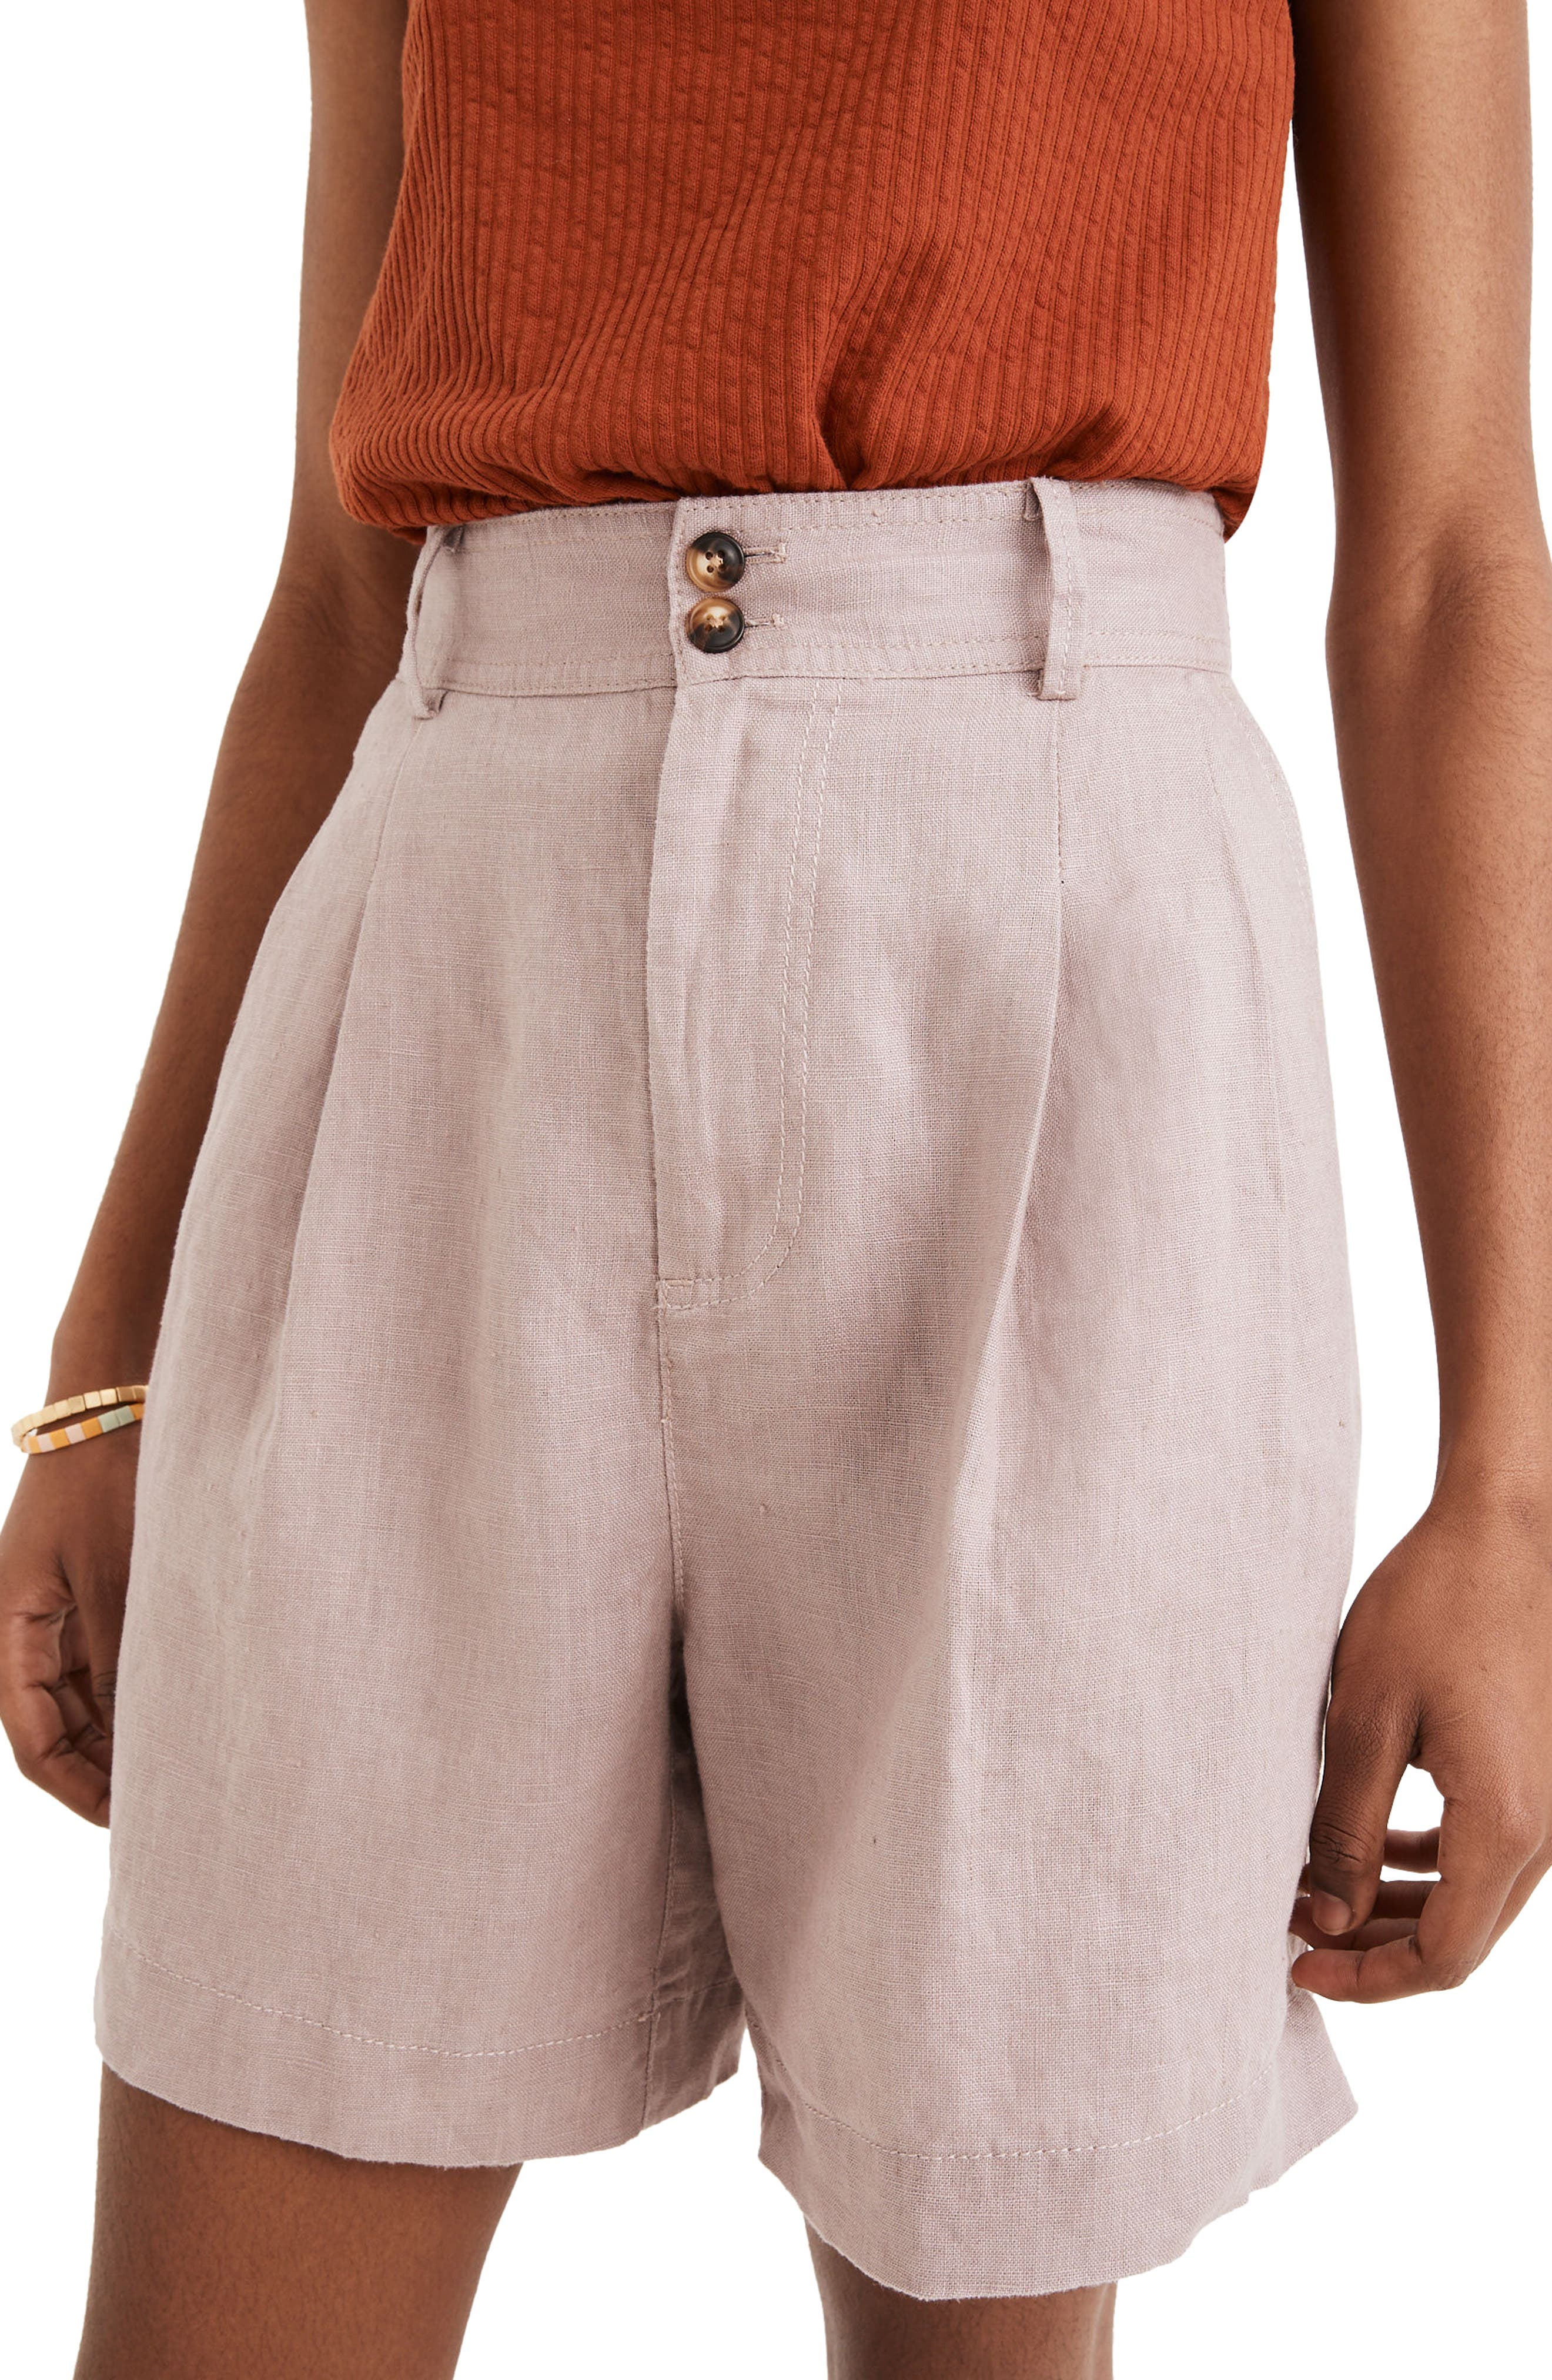 Linen black shorts for women with pockets and high waist.Black linen shorts.Linen shorts.Women linen shorts.Women shorts